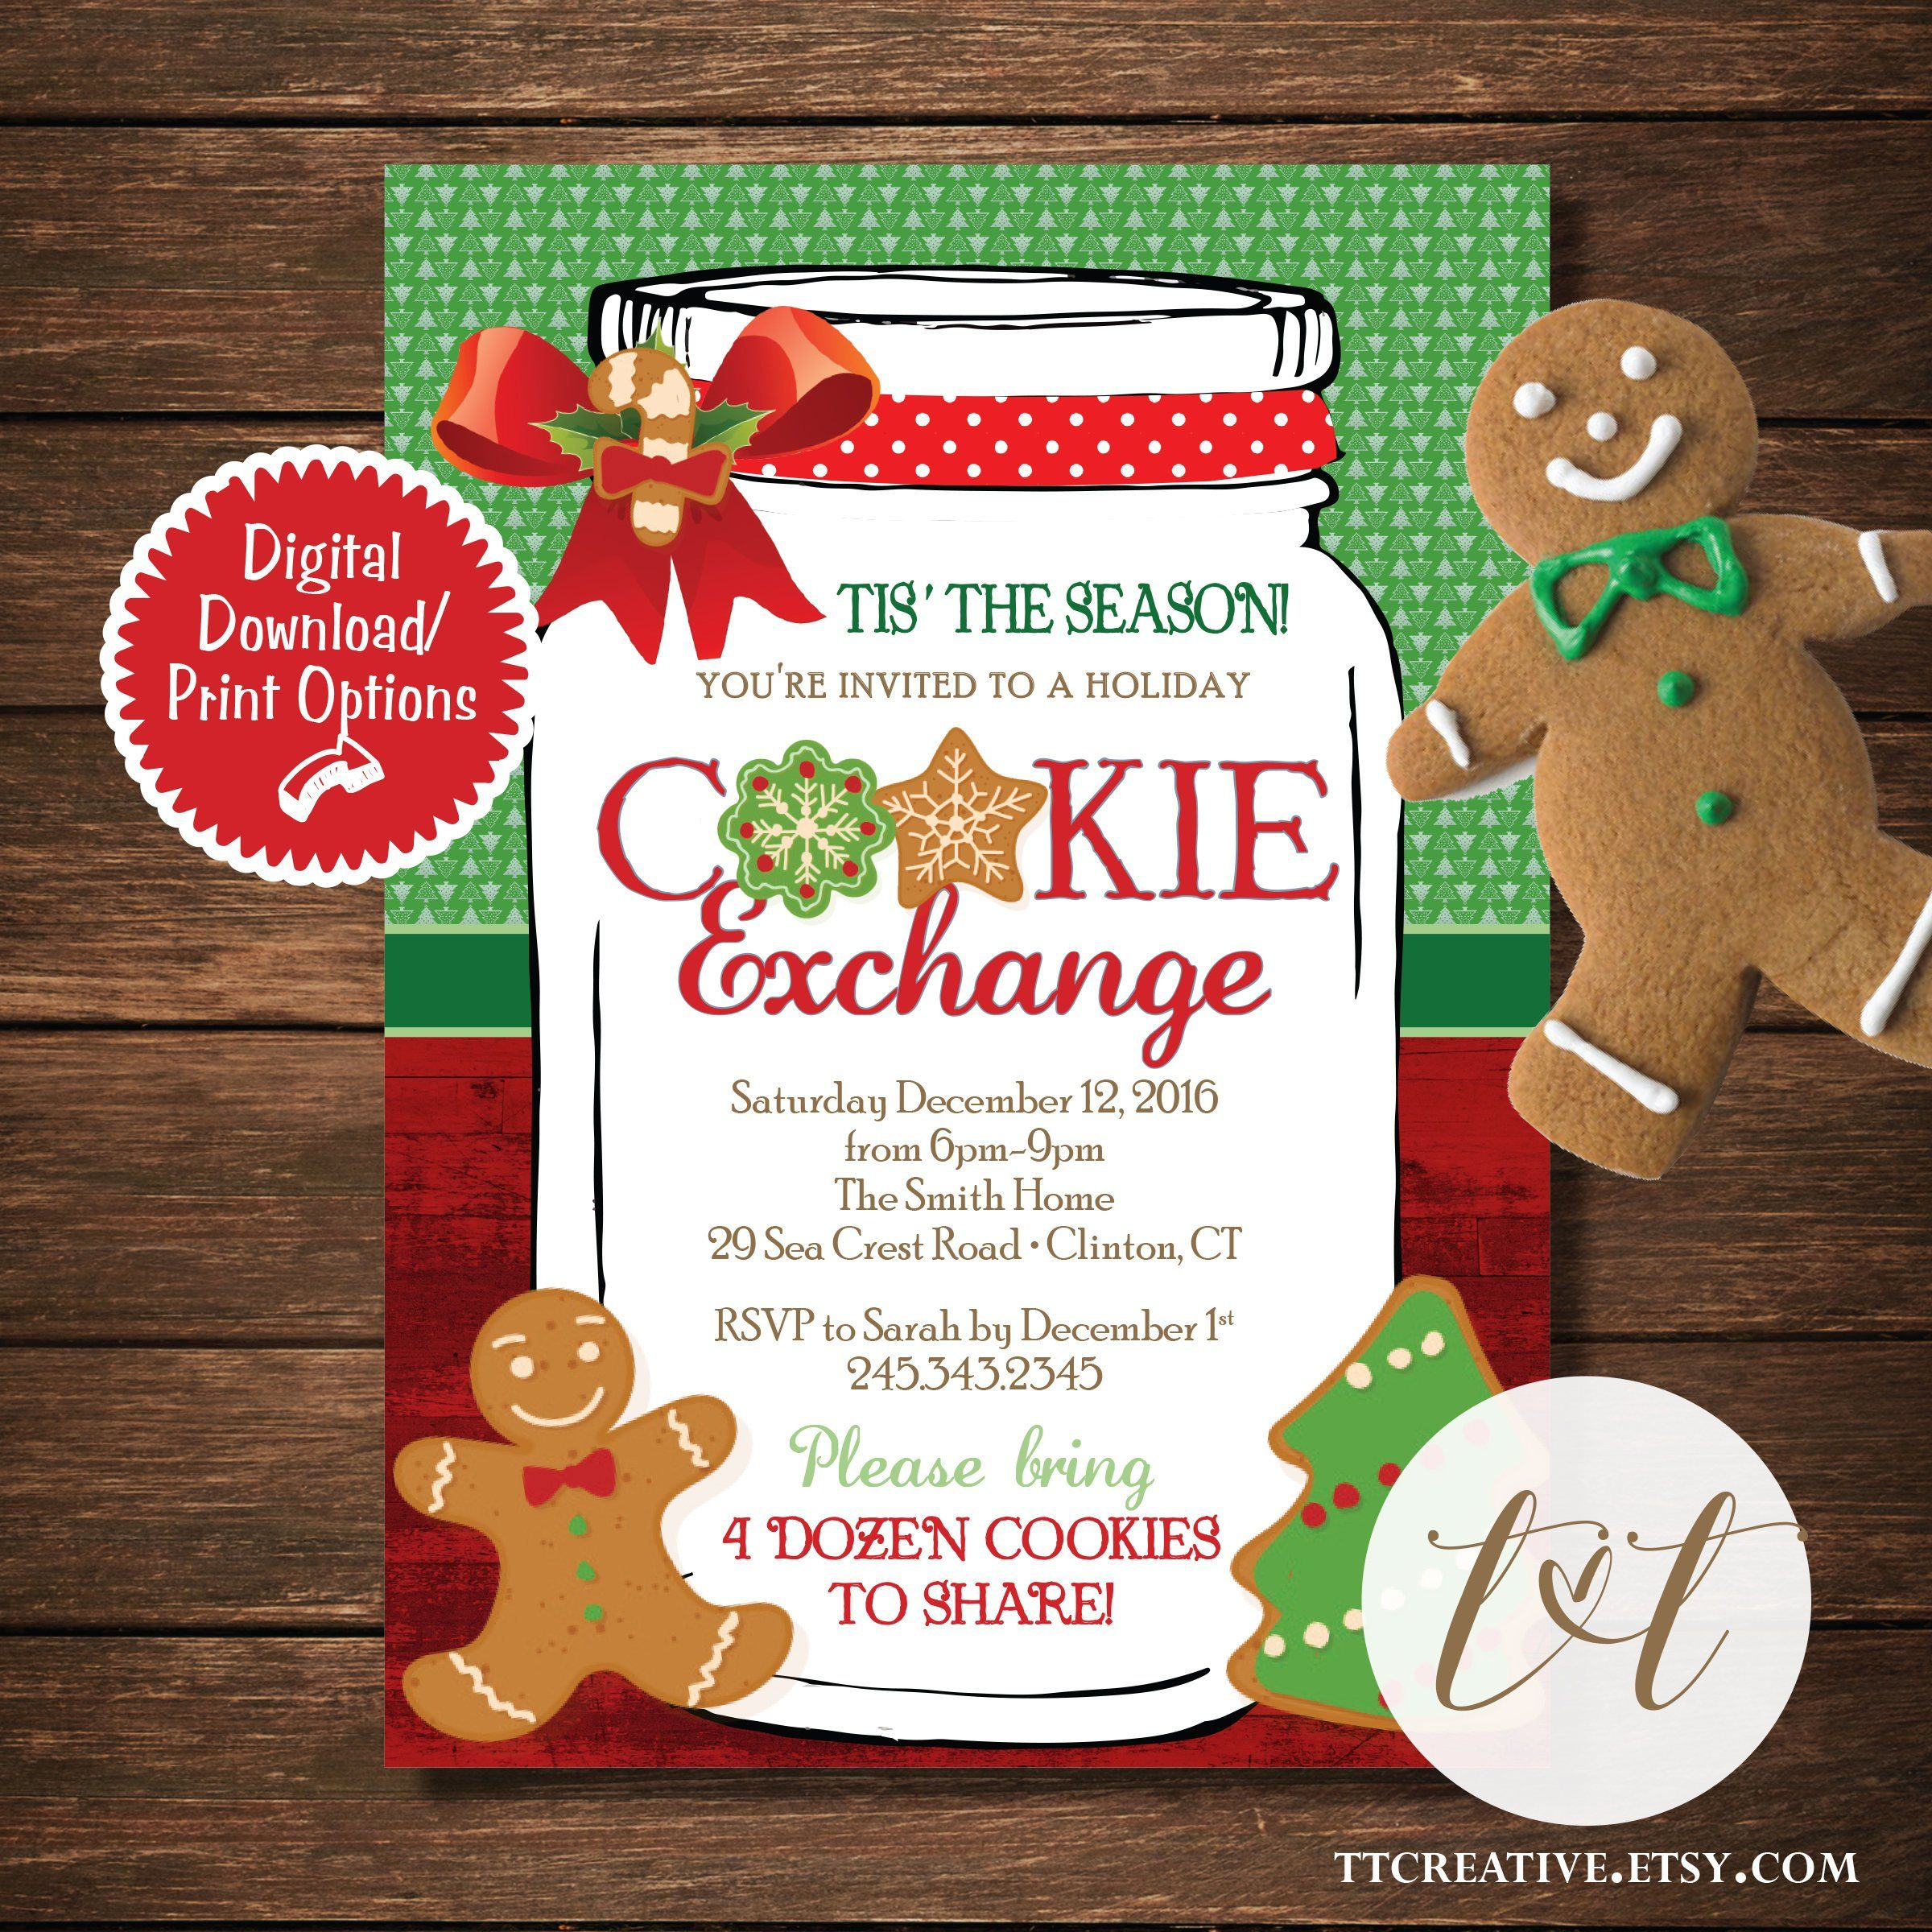 Christmas Cookie Party Invite.Cookie Exchange Holiday Party Invite Rustic Mason Jar